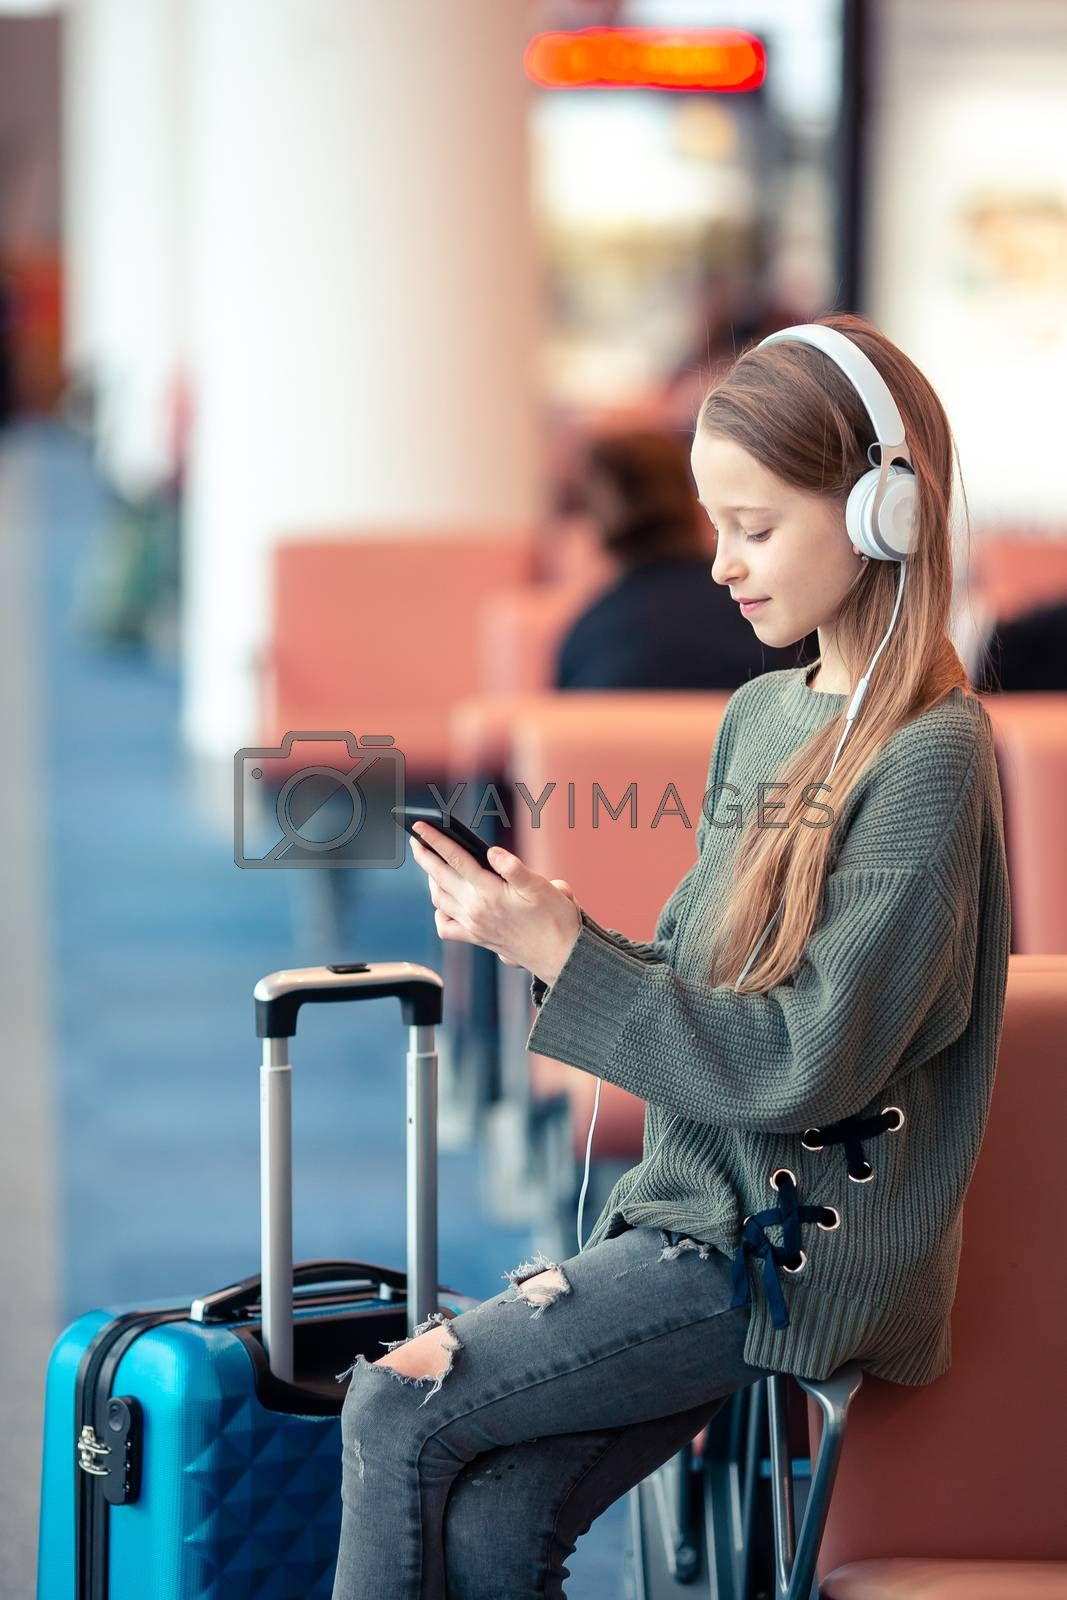 Little adorable kid in airport waiting for boarding indoors with phone in hands